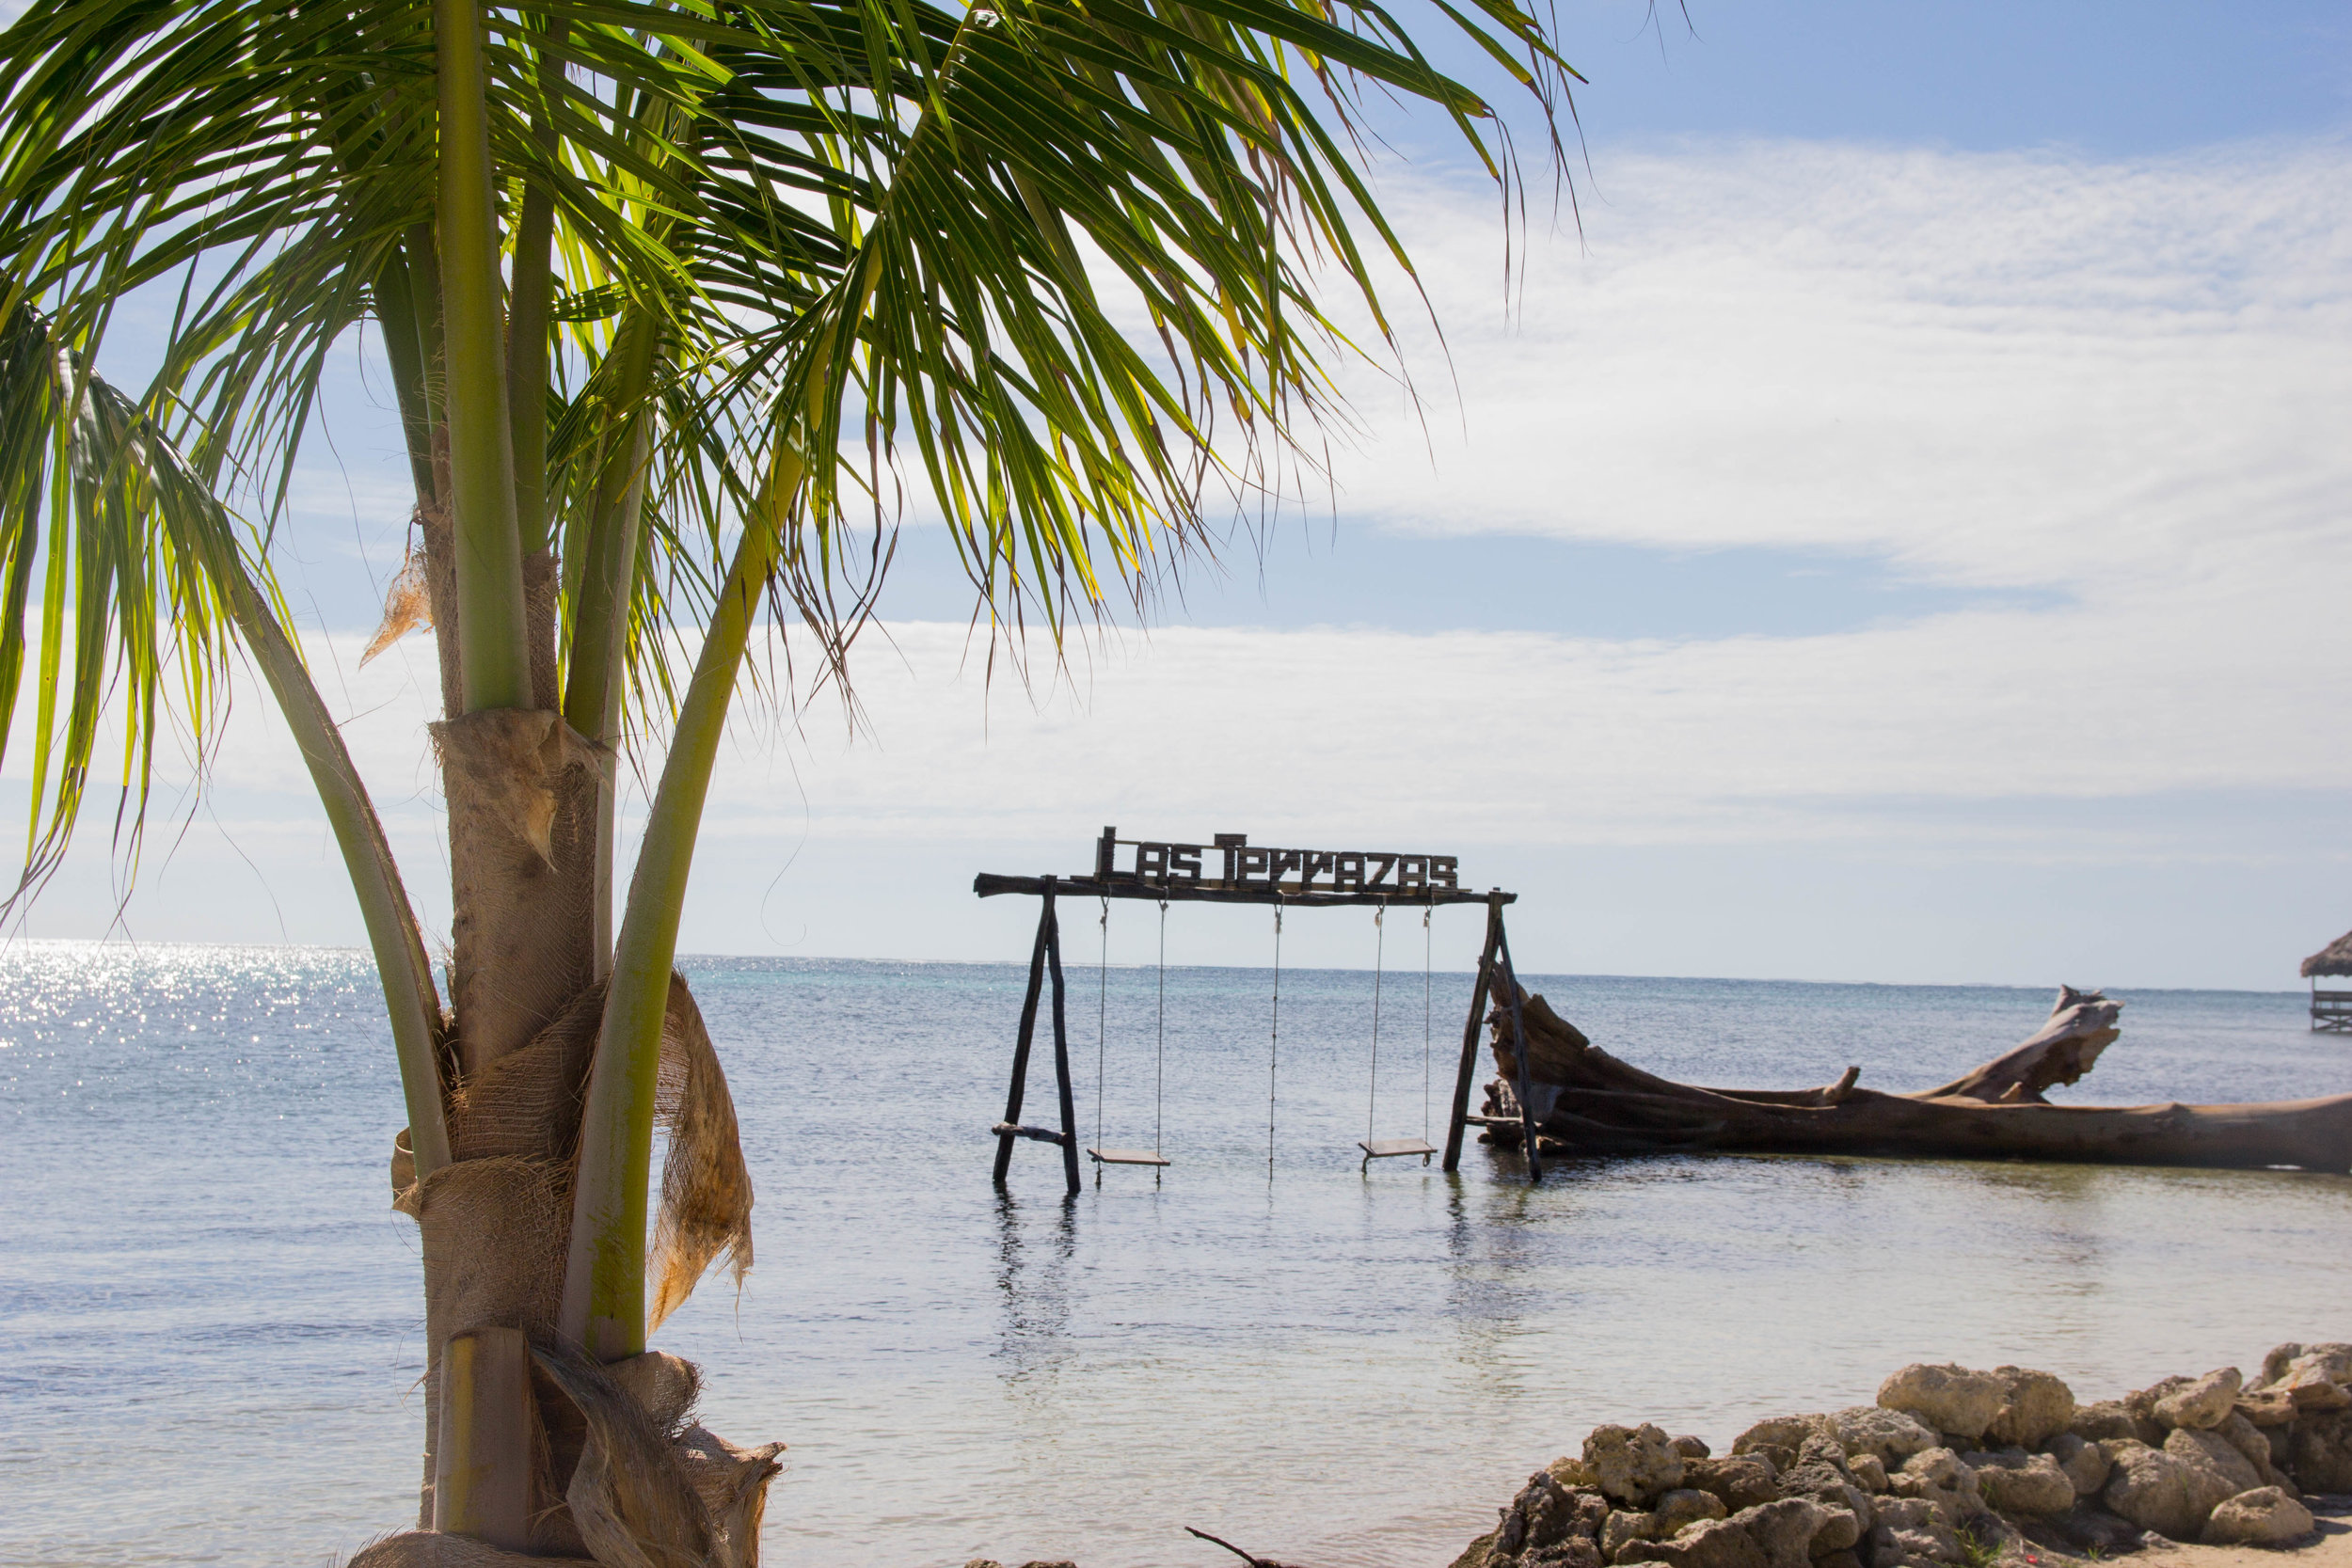 las terrazas, san pedro ambrgris caye, belize travel guide, anniversary trip ideas, where to travel in central america, travel blogger, what to do in belize, where to go in belize